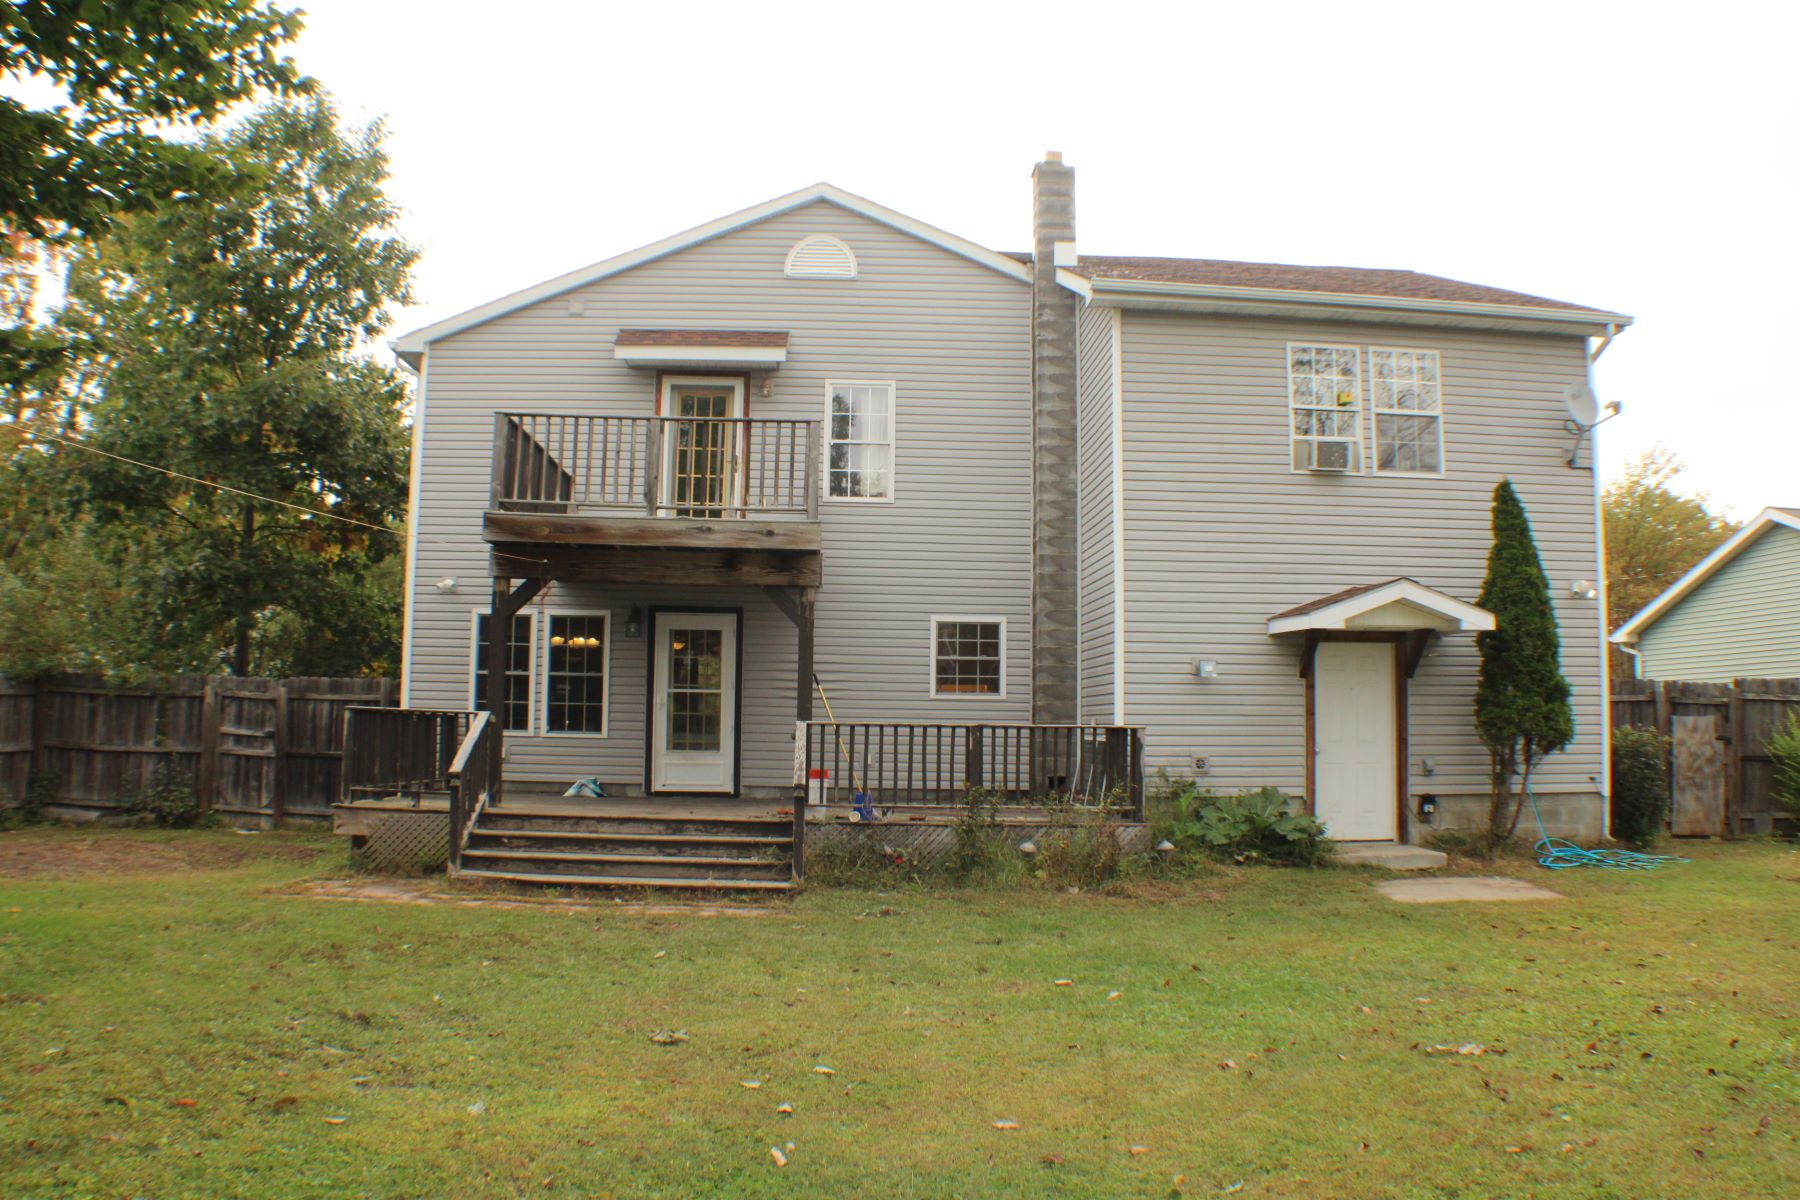 Single Family Homes for Active at Great Family Home in Hadley 97 2nd Av Hadley, New York 12835 United States